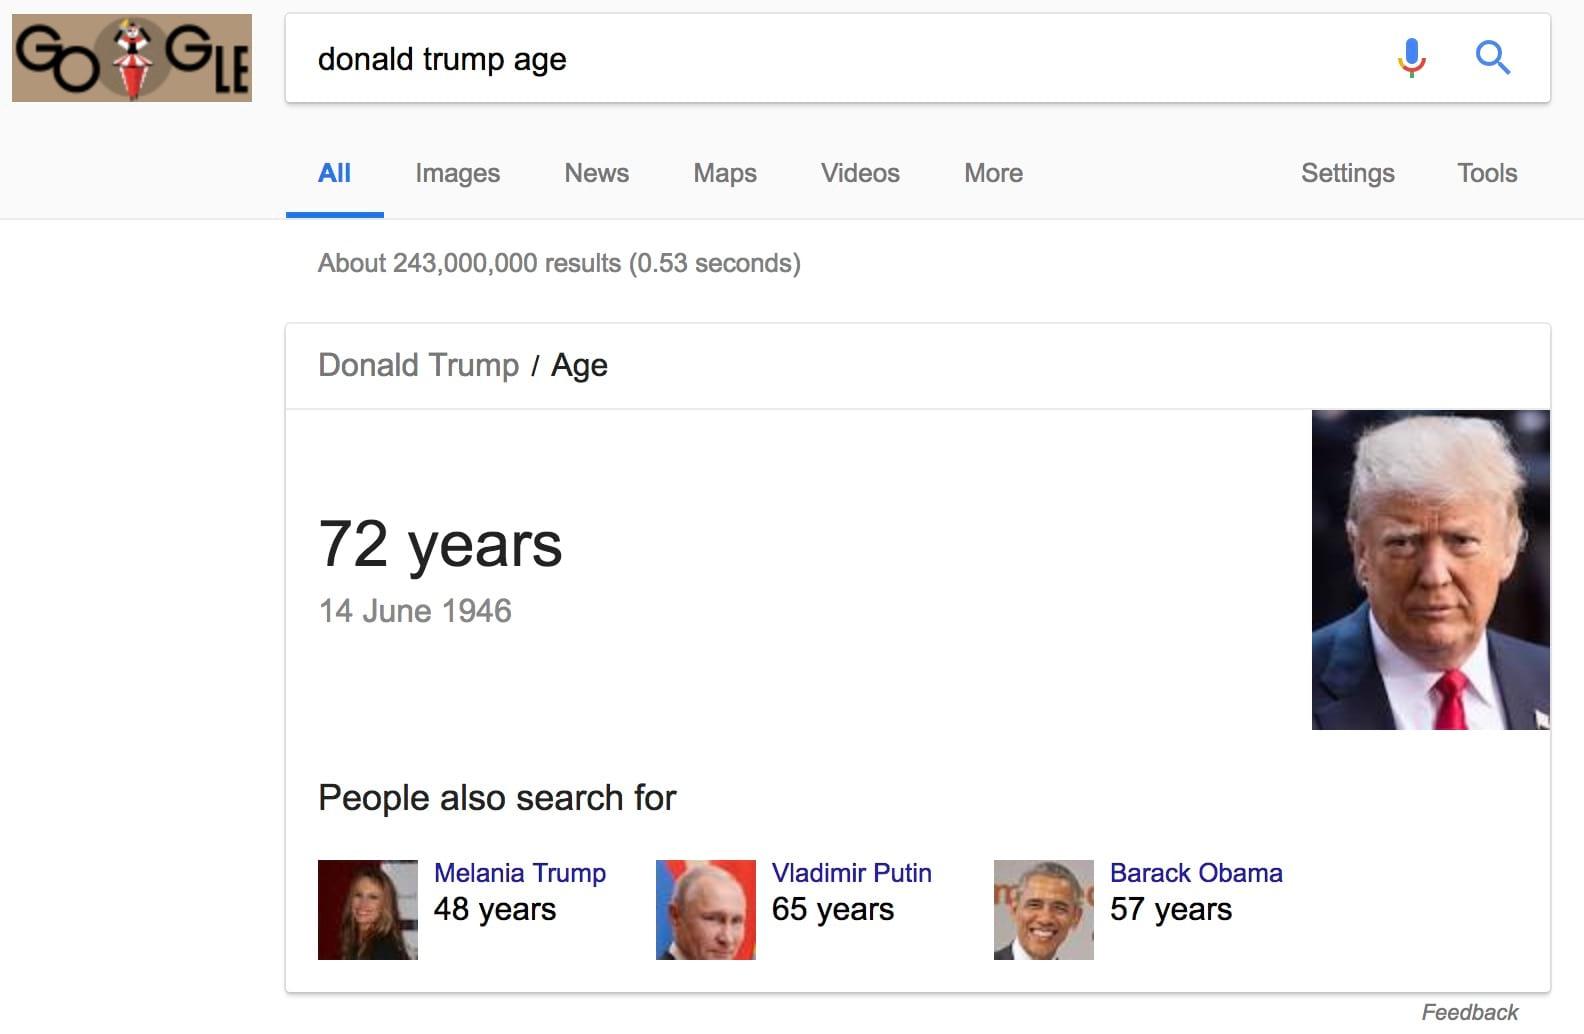 donald trump age Google Search